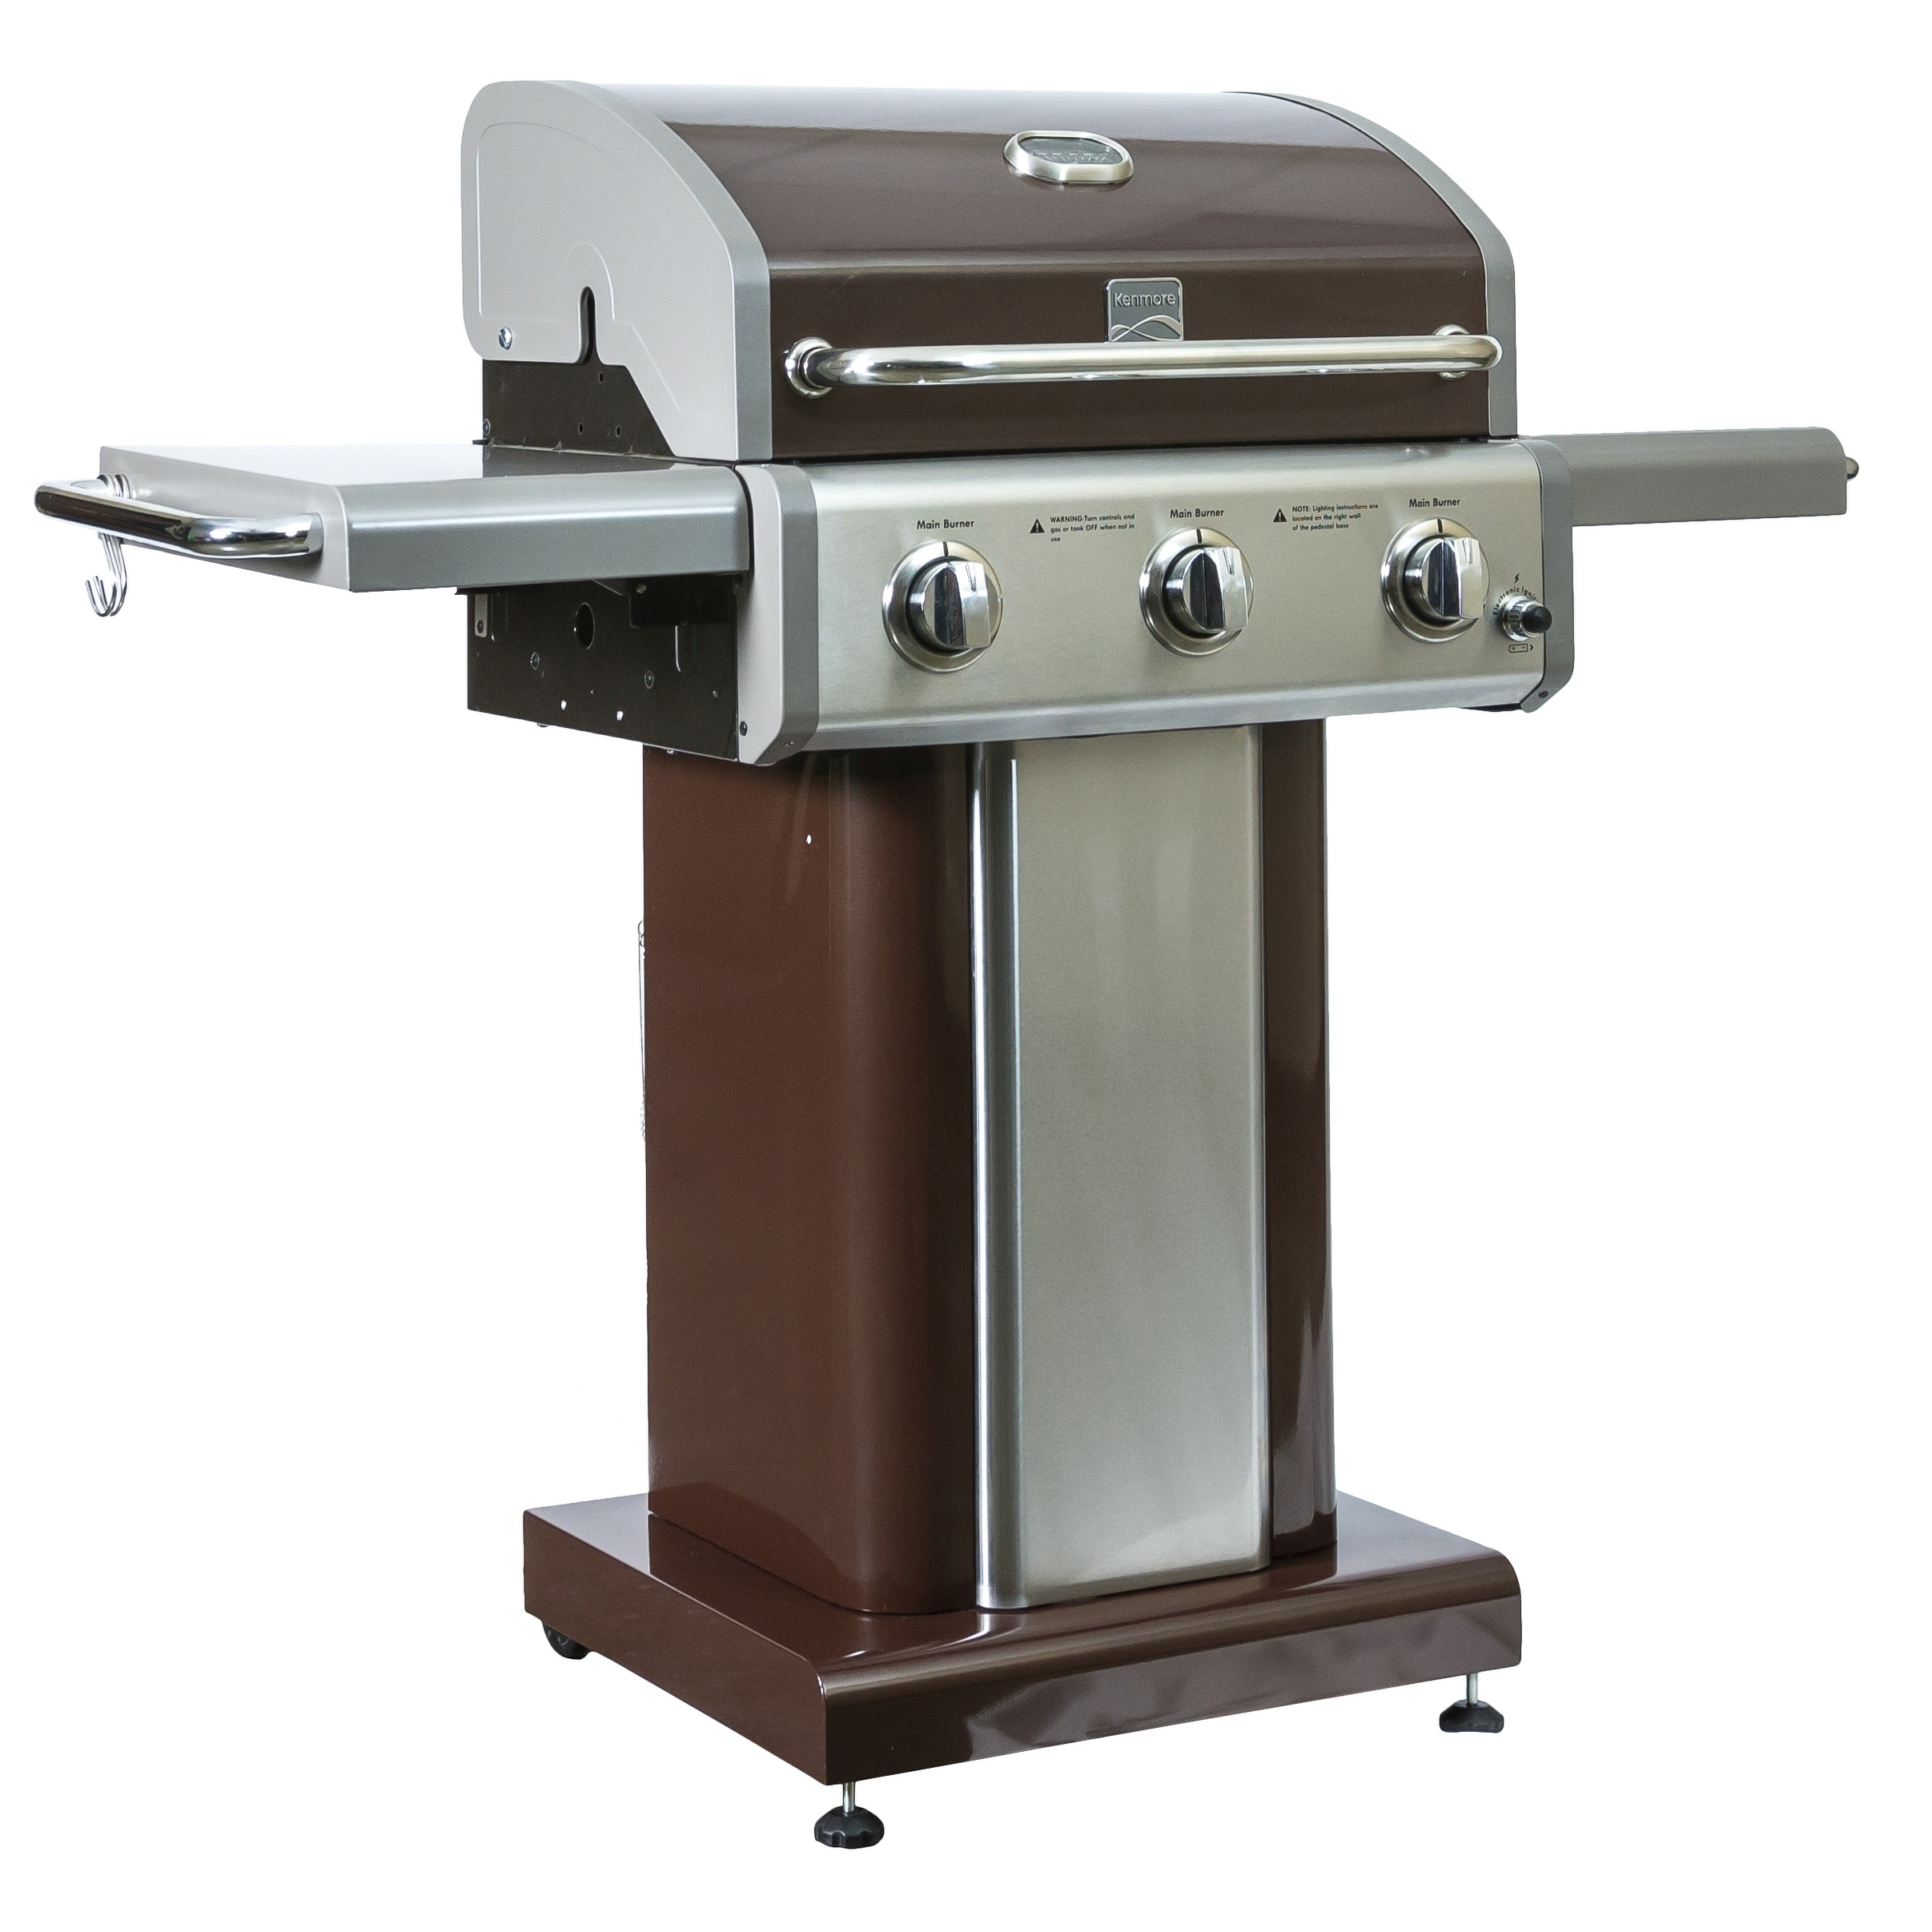 Shop Kenmore 3 Burner Pedestal Grill - product size:1298*613*1145mm, - Free  Shipping Today - Overstock.com - 16964383